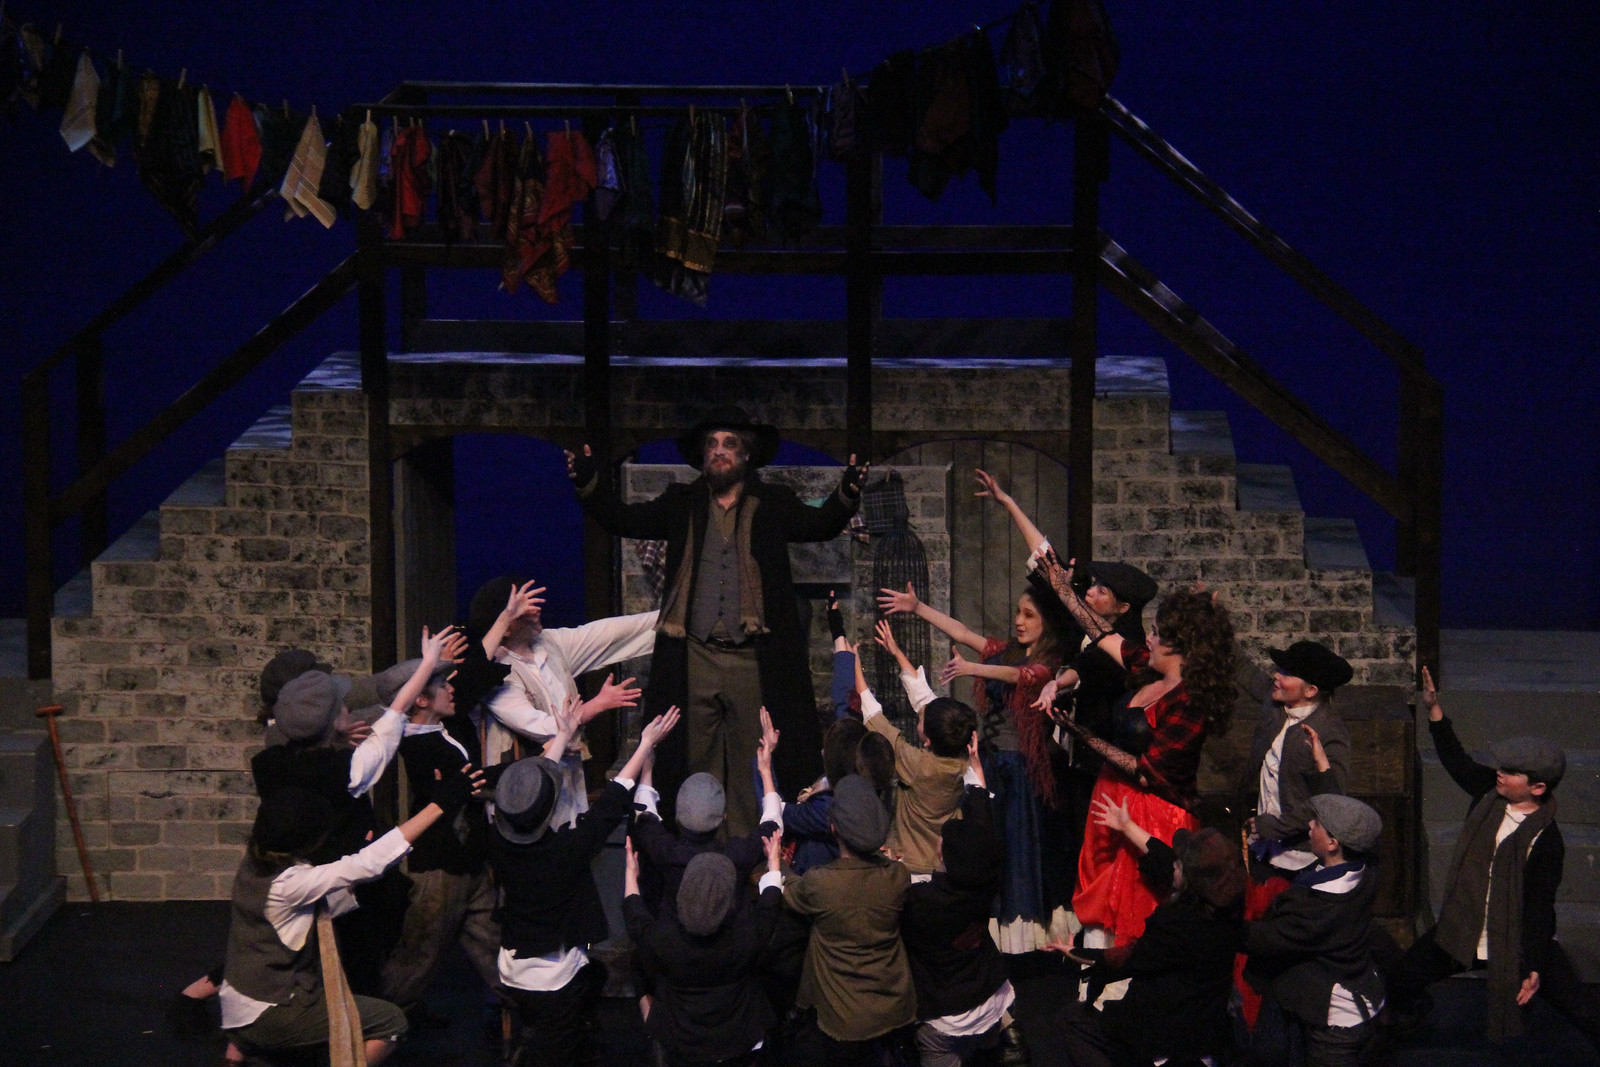 anything hands up fagin